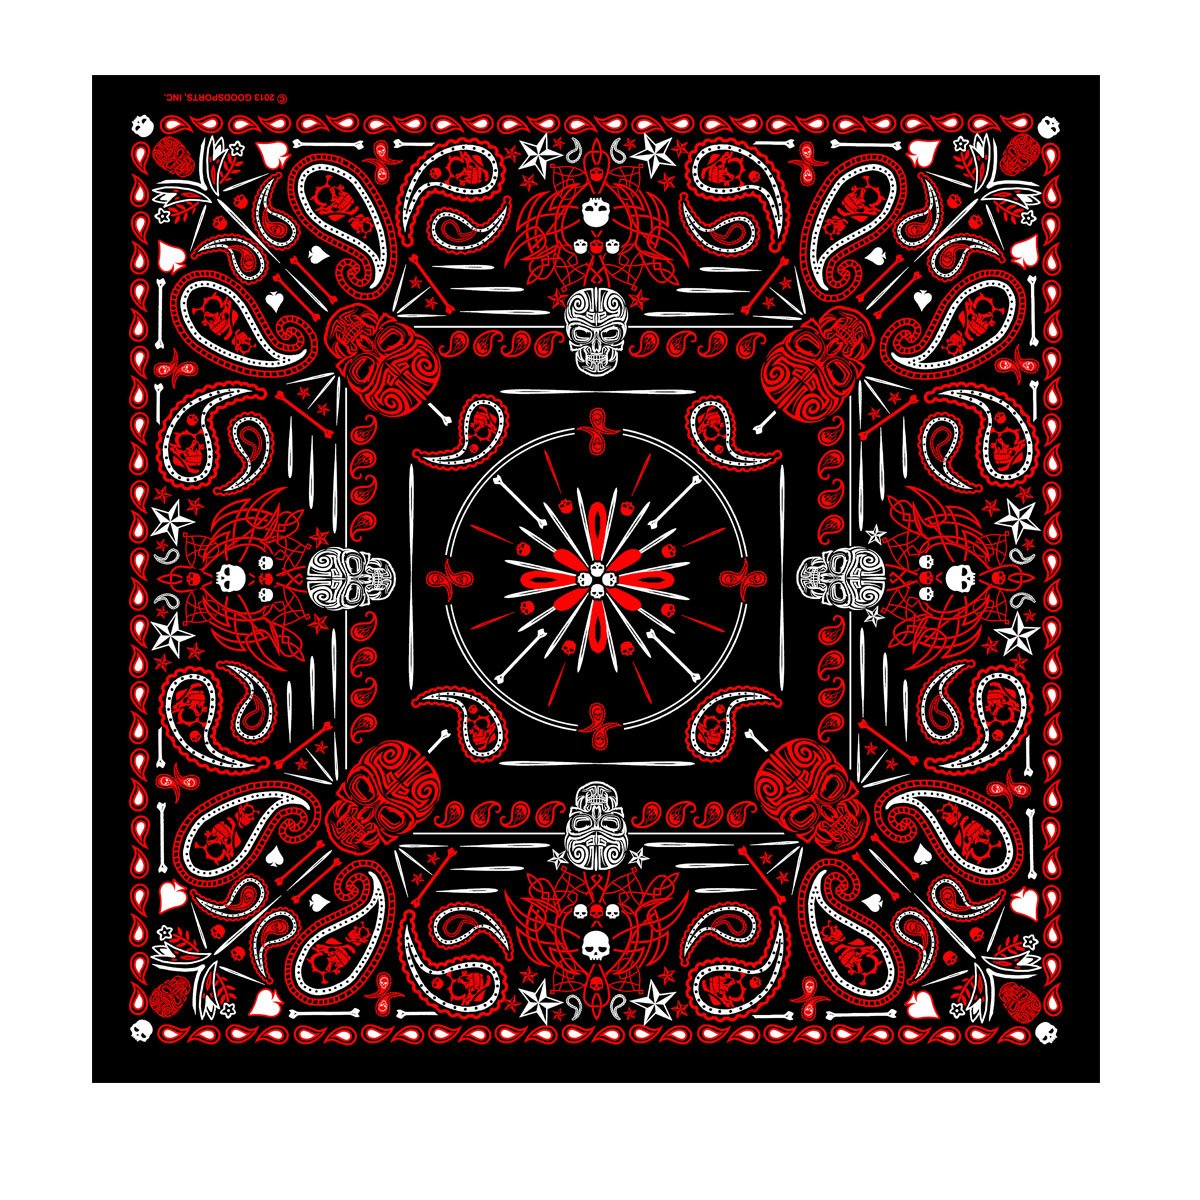 Signature Bikers Bandanas Collection Original Design, 21 x 21 - BANDANA MENS RED PAISLEY SKULL